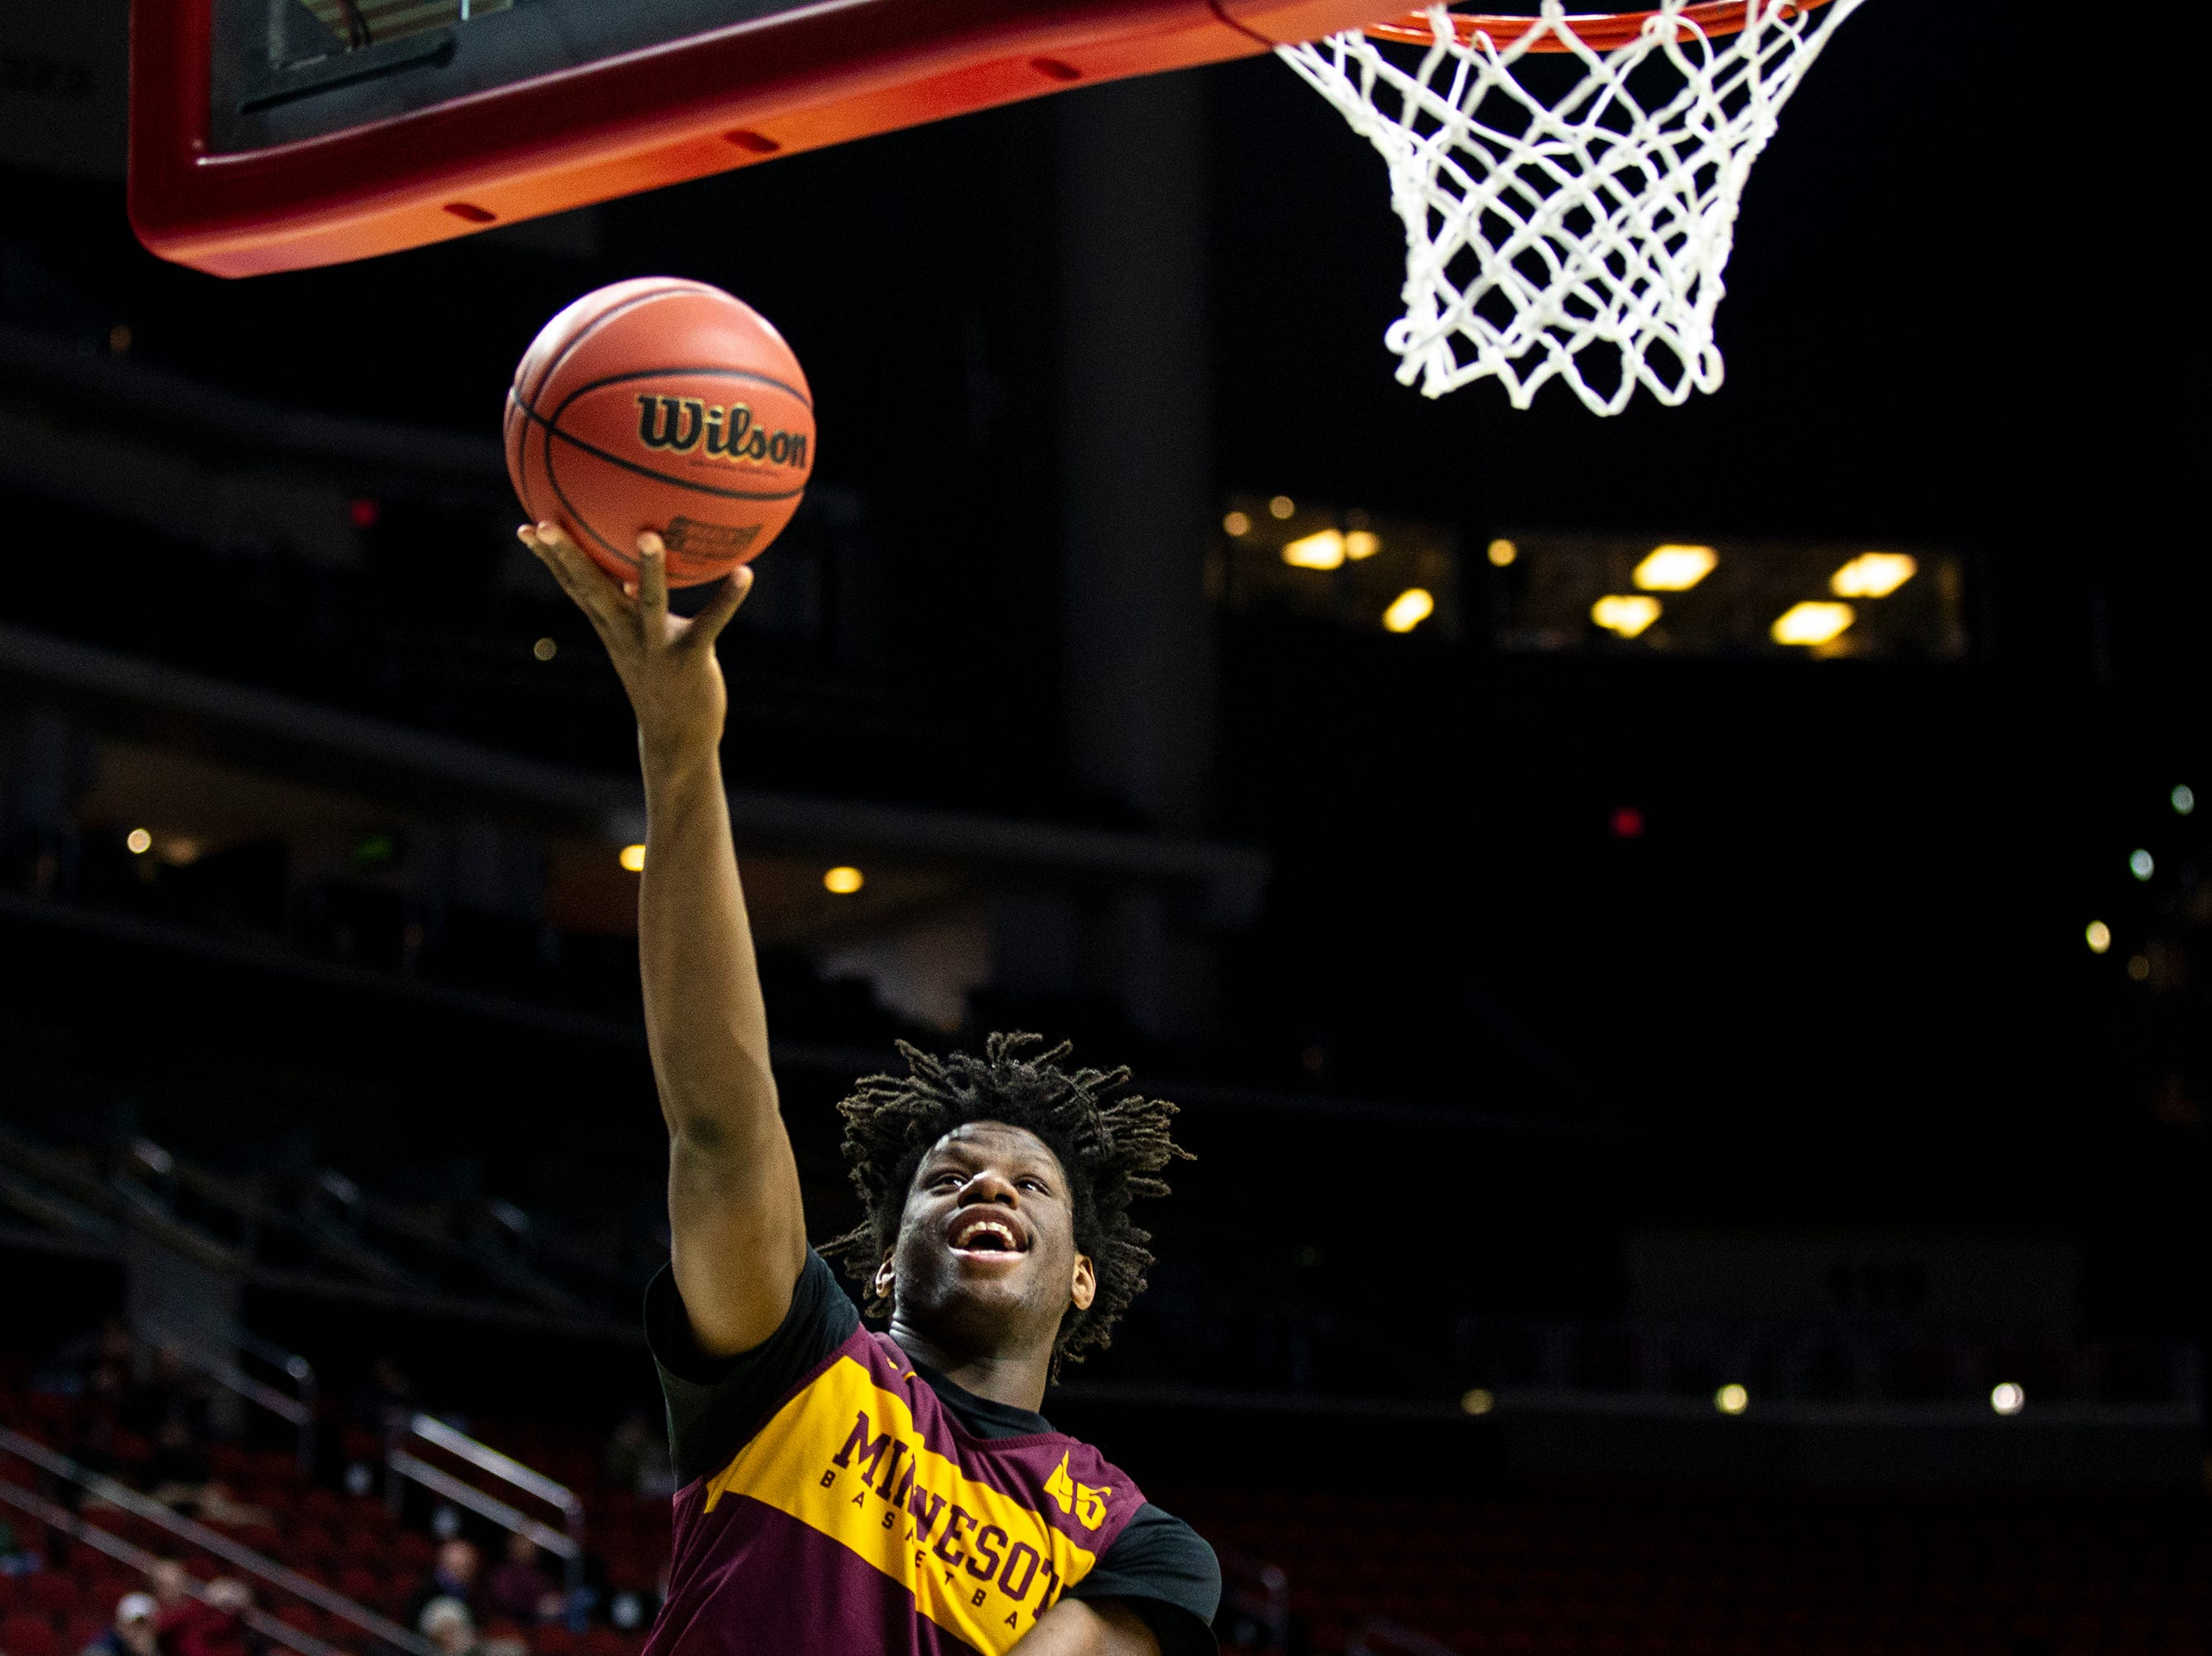 Minnesota's Daniel Oturu shoots the ball during Minnesota's open practice before the first round of the NCAA Men's Basketball Tournament on Wednesday, March 20, 2019, at Wells Fargo Arena in Des Moines, Iowa. Minnesota will face Louisville in the first round on Thursday.